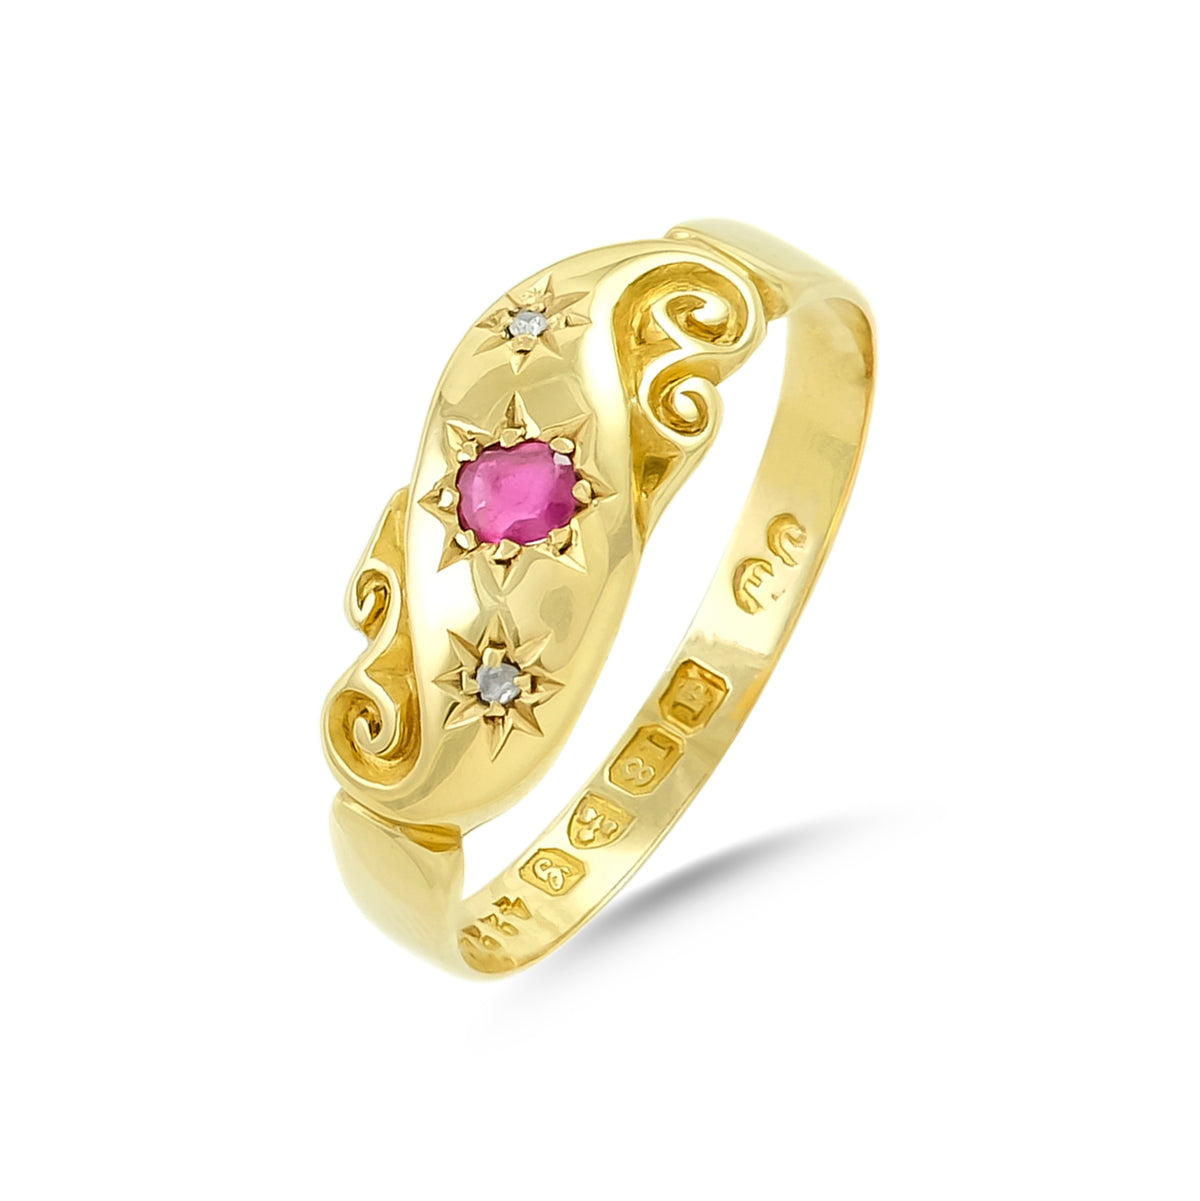 Vintage 18ct Yellow Gold Ruby and Diamond Gypsy Ring